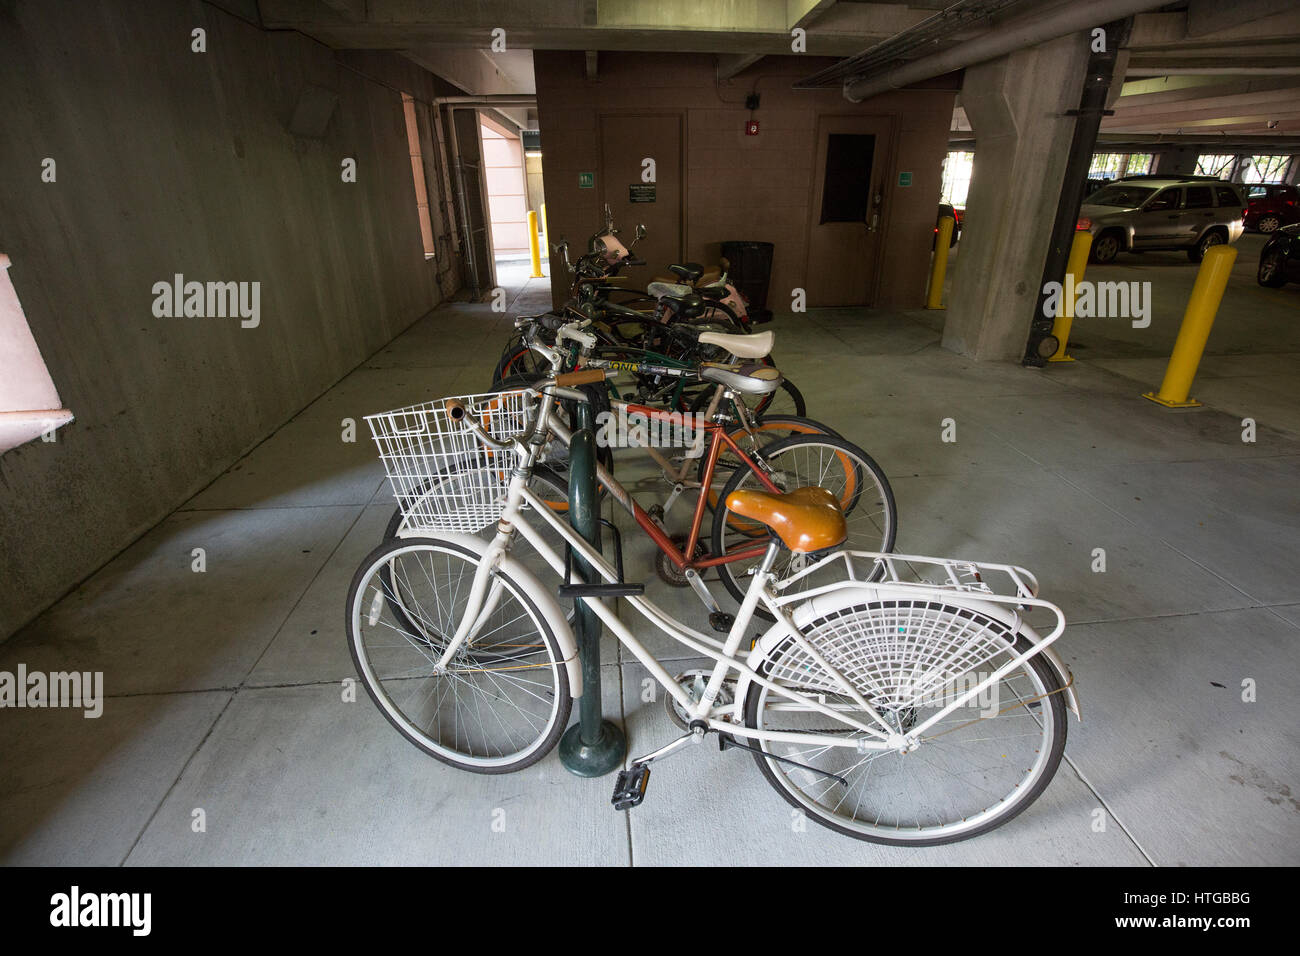 Parking Garage Bike Rack Bicycles Locked To Rack In Parking Garage Stock Photo 135584500